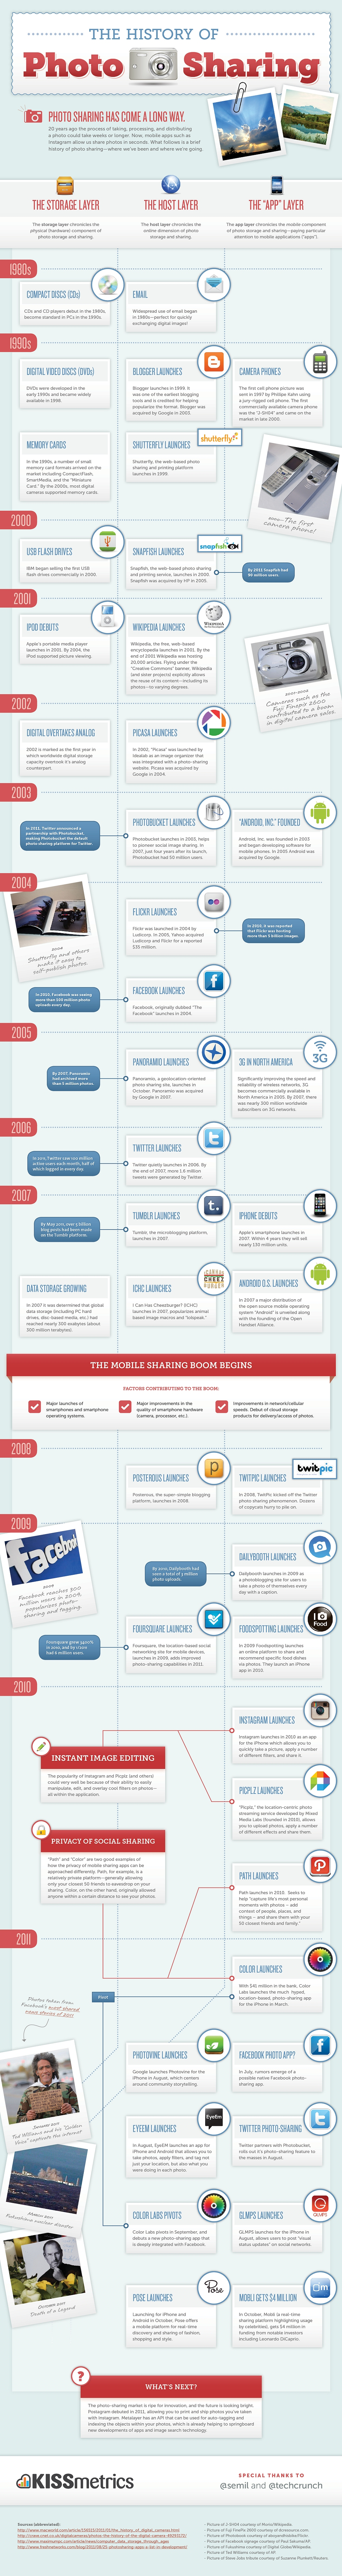 photo sharing1 The History Of Photo Sharing [Infographic]